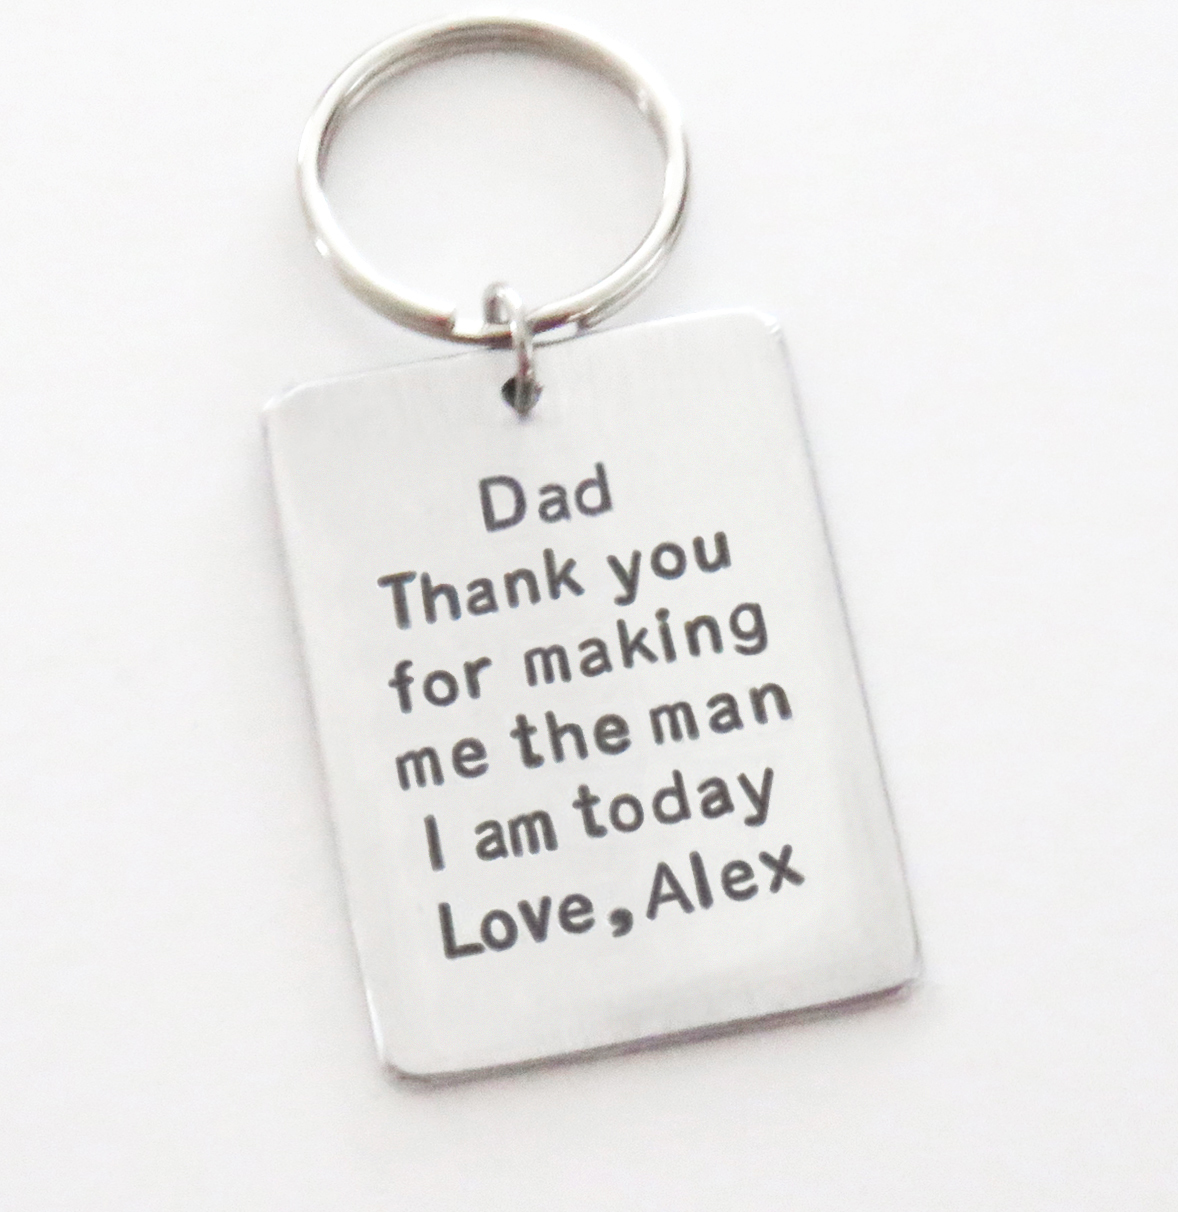 Thank You Wedding Gift For Dad : Stamped personalized wedding gifts, jewelry, key chains, funny cards ...